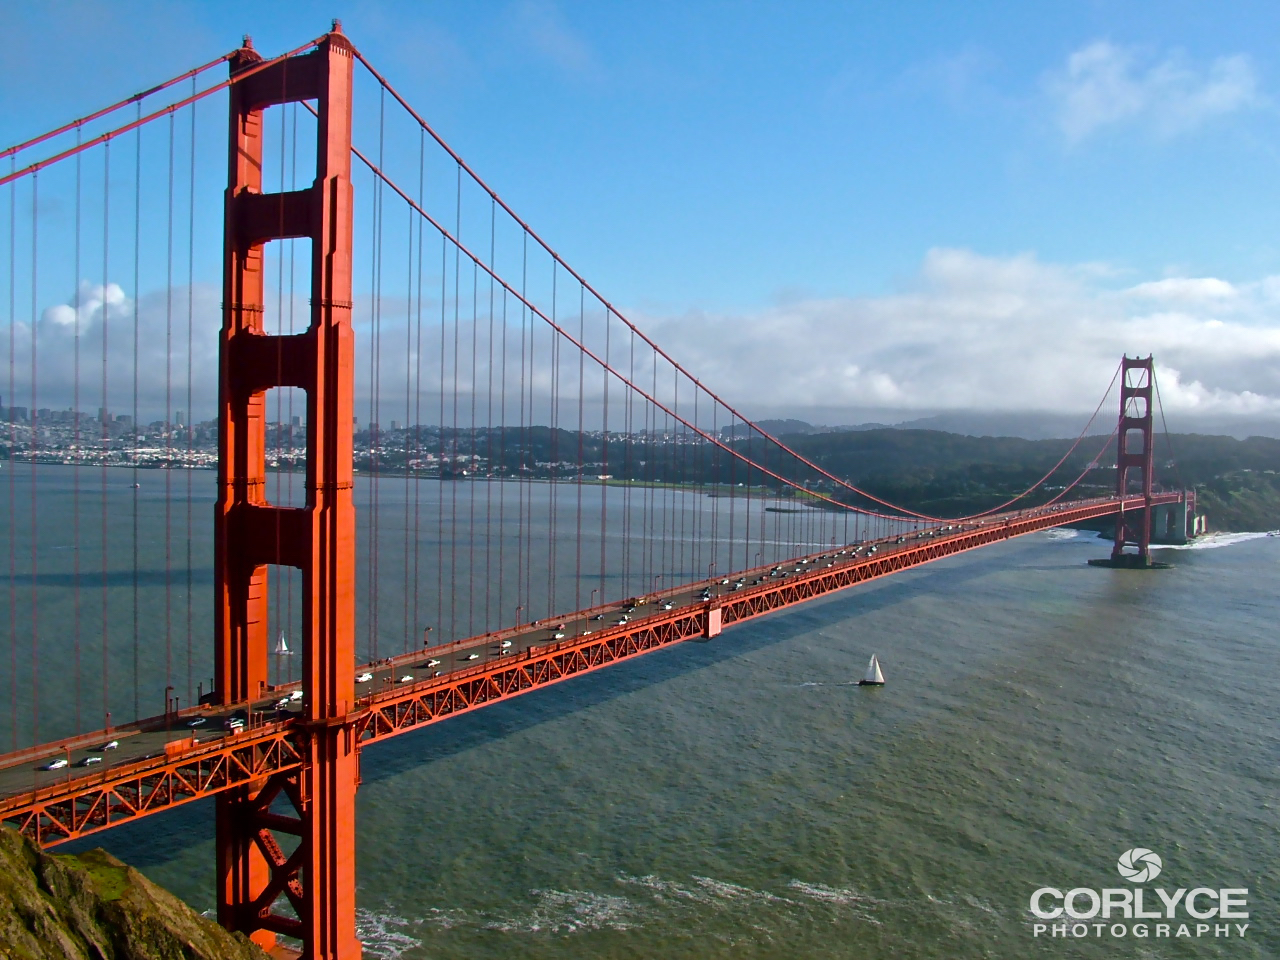 The Iconic Golden Gate Bridge.